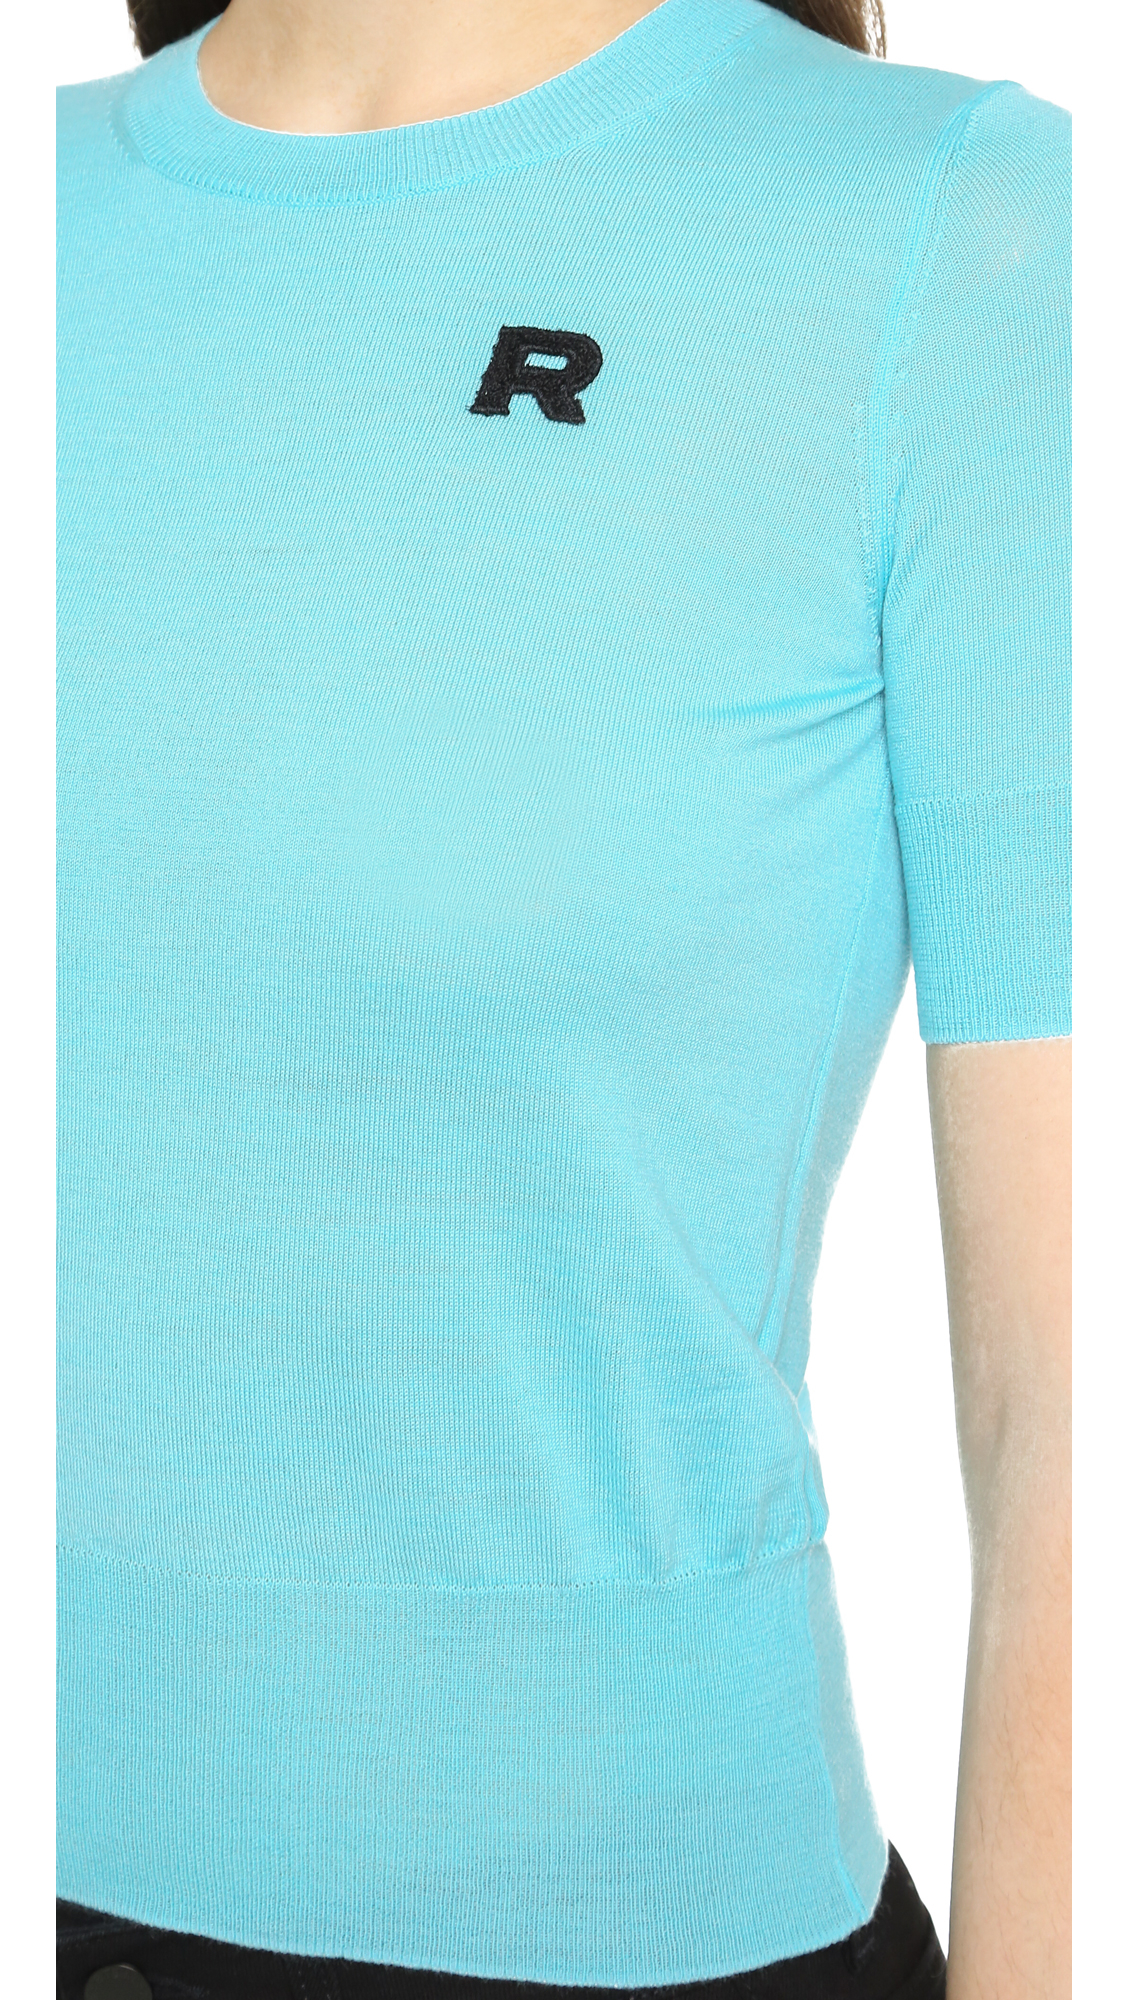 Rochas Short Sleeve Sweater - Turquoise in Blue | Lyst